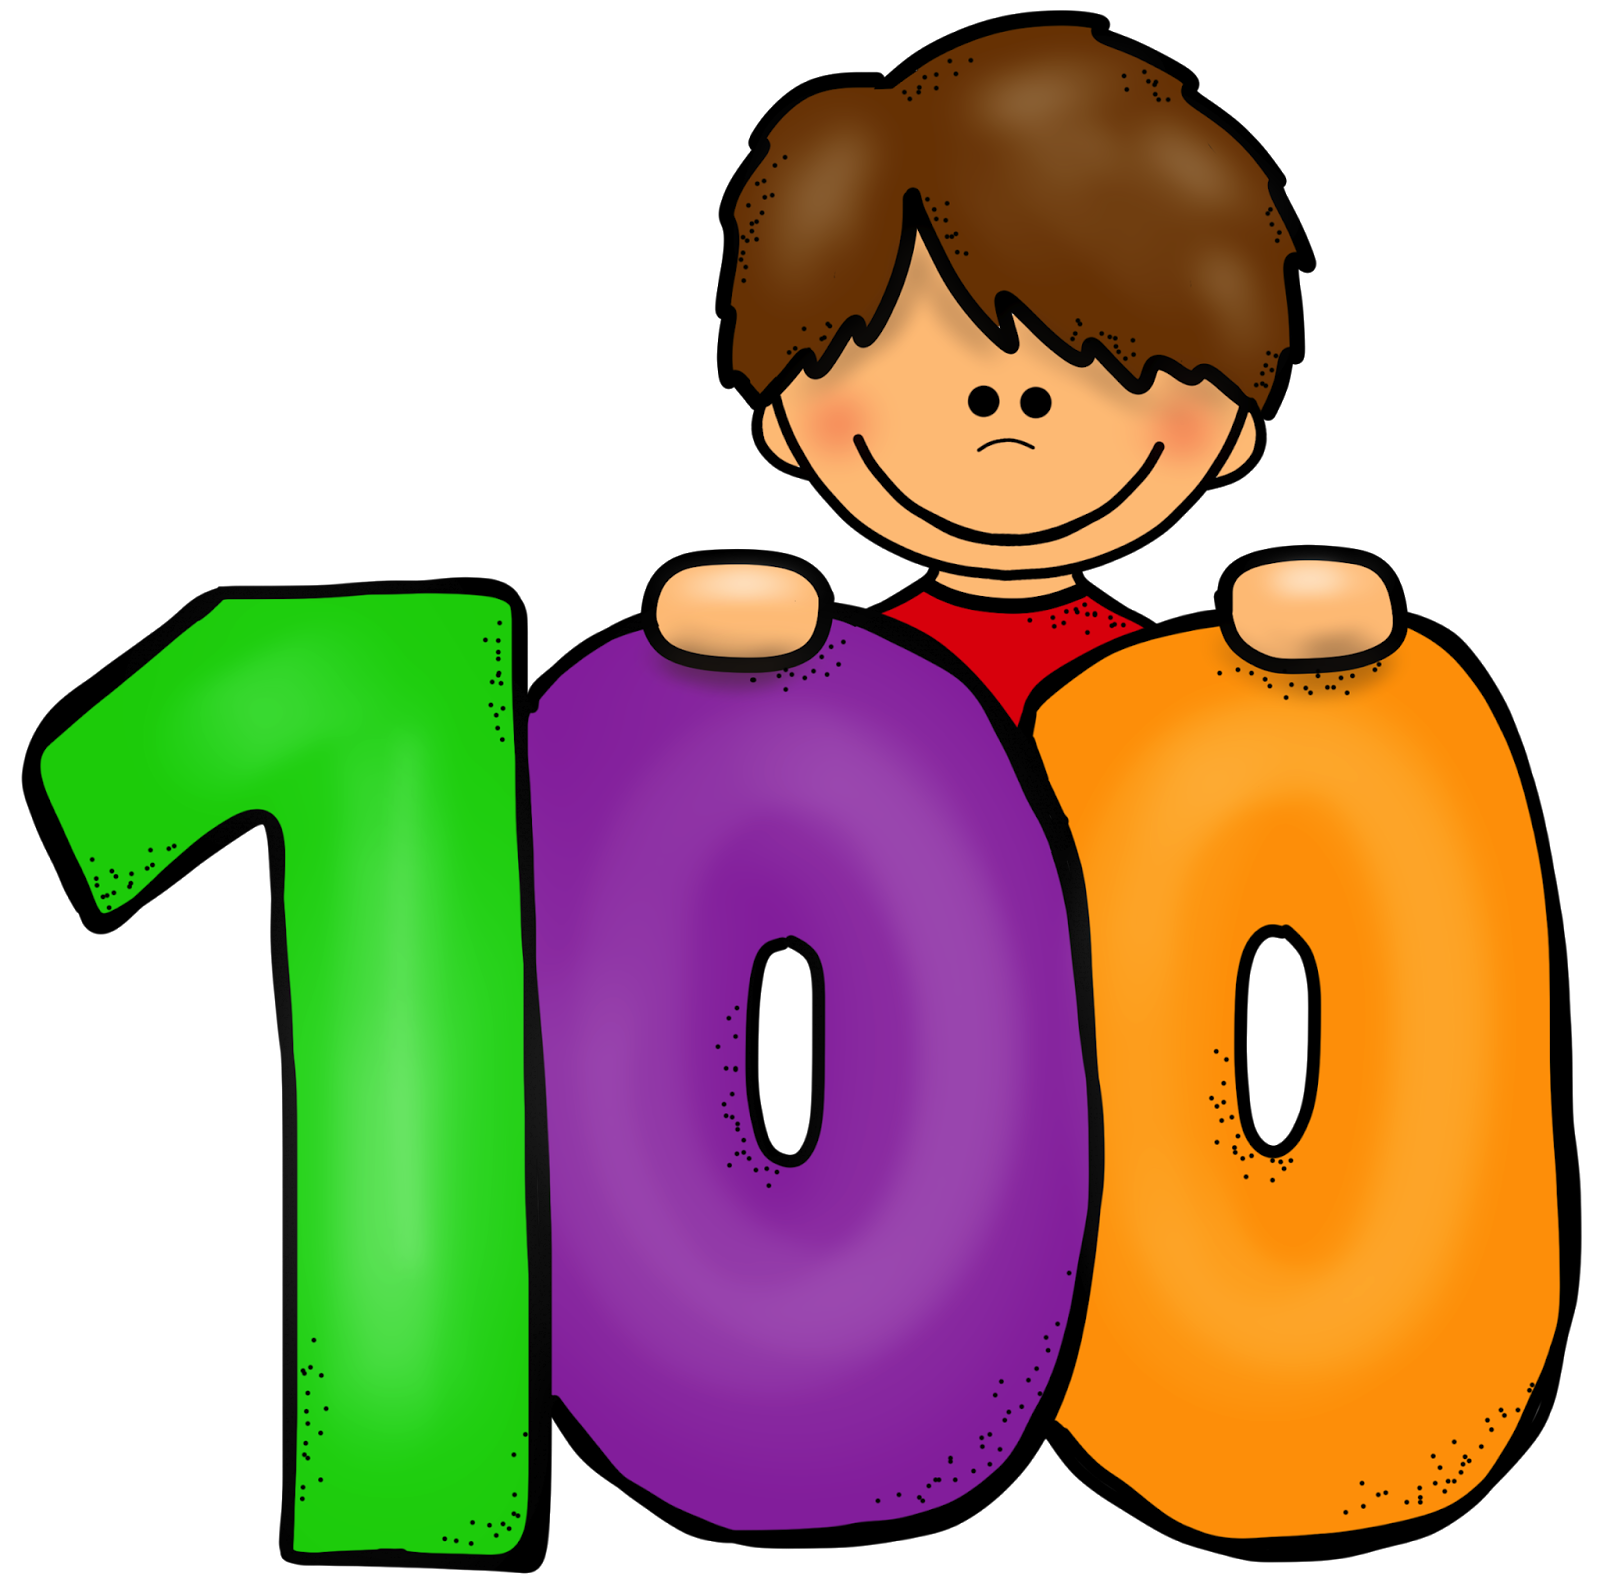 Clipart 100 days of school